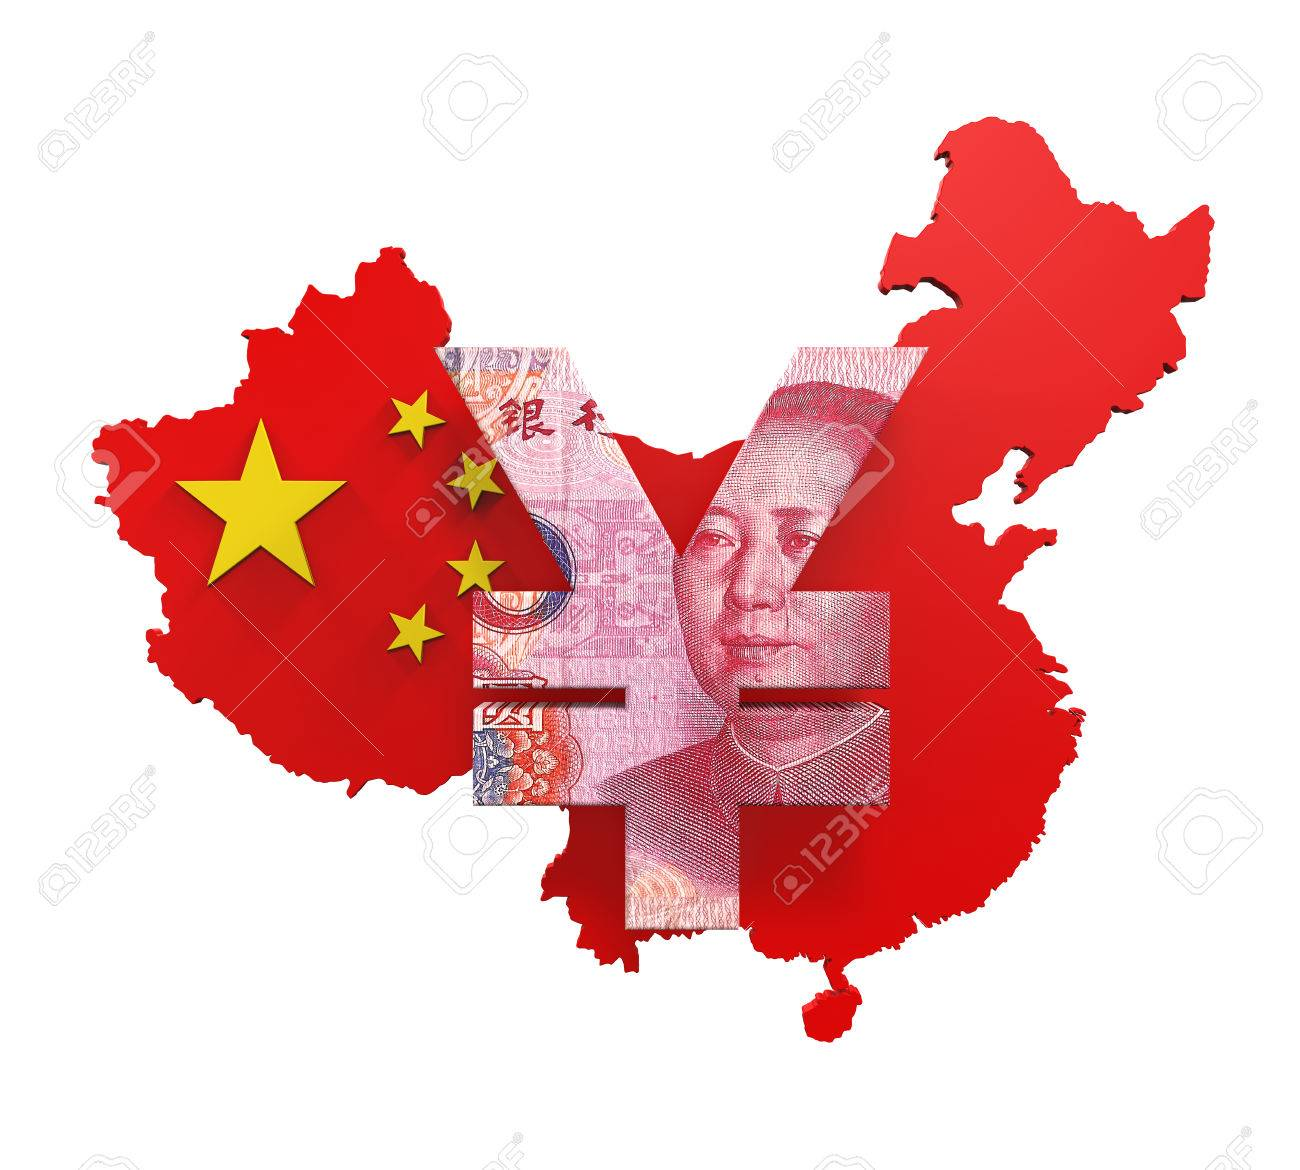 Chinese yuan symbol stock photo picture and royalty free image chinese yuan symbol stock photo 43955697 buycottarizona